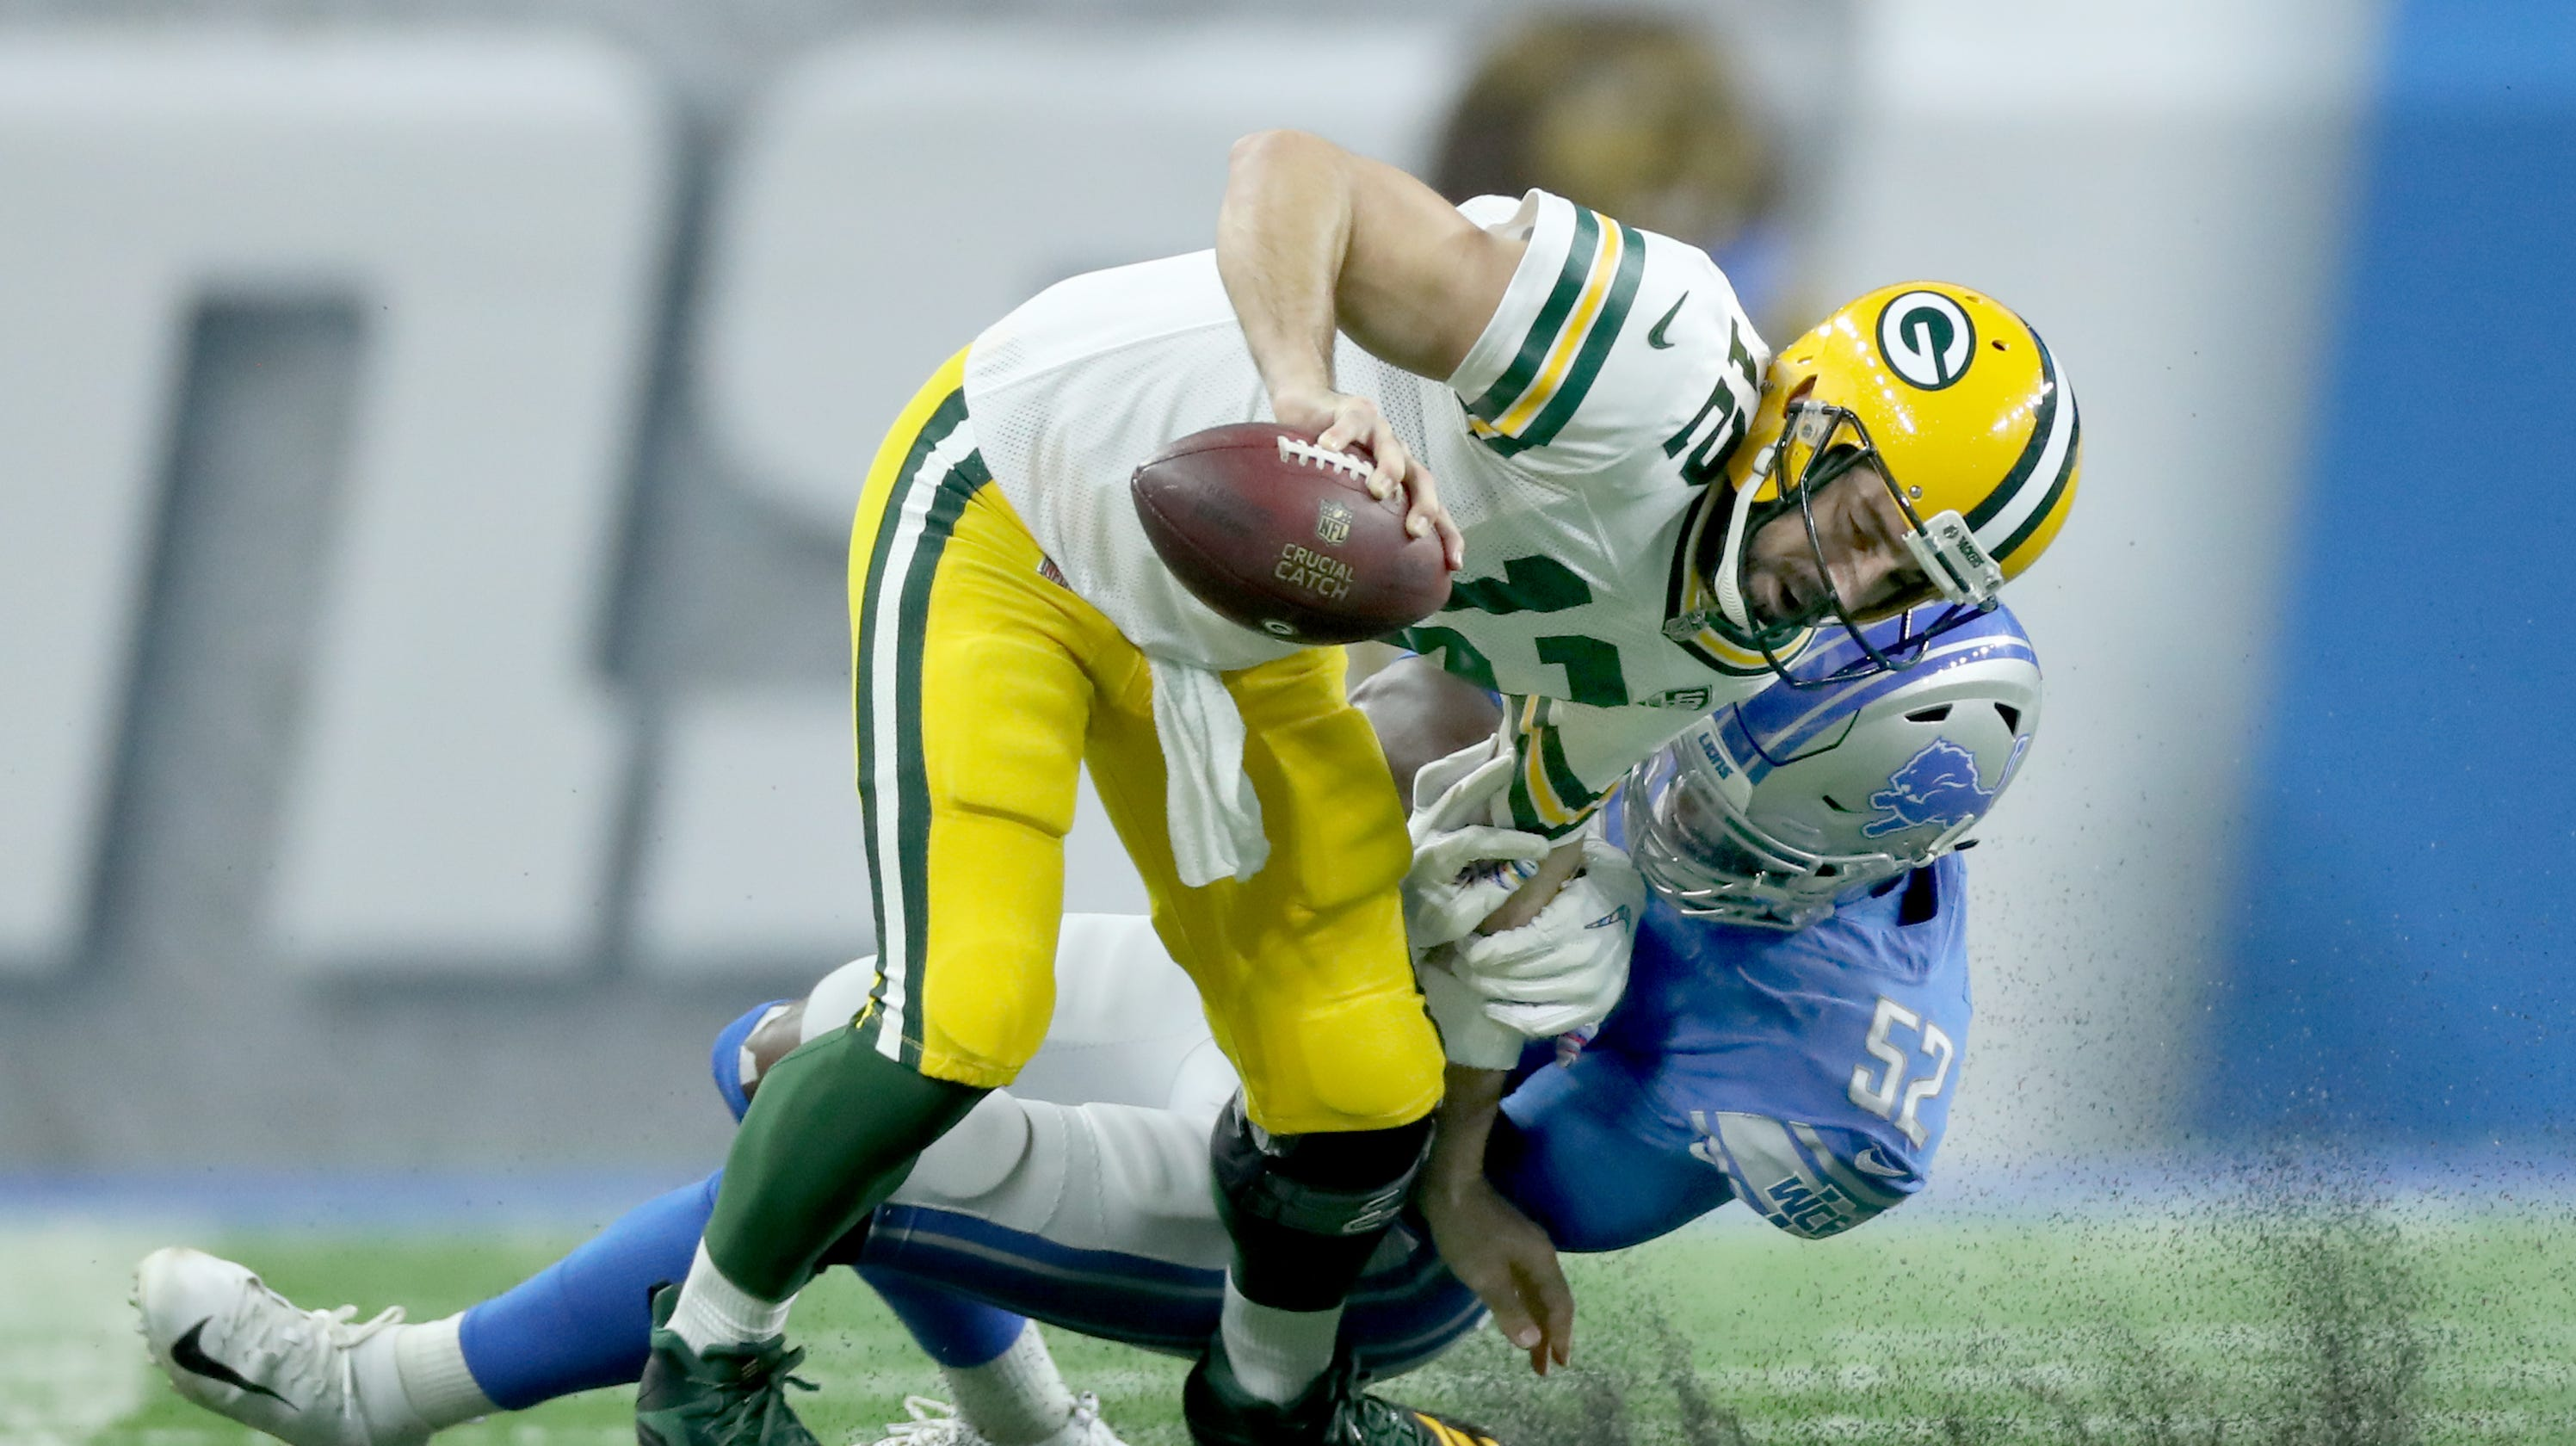 Green Bay Packers notes  Awkward tackle sets Aaron Rodgers back 56e971f5e